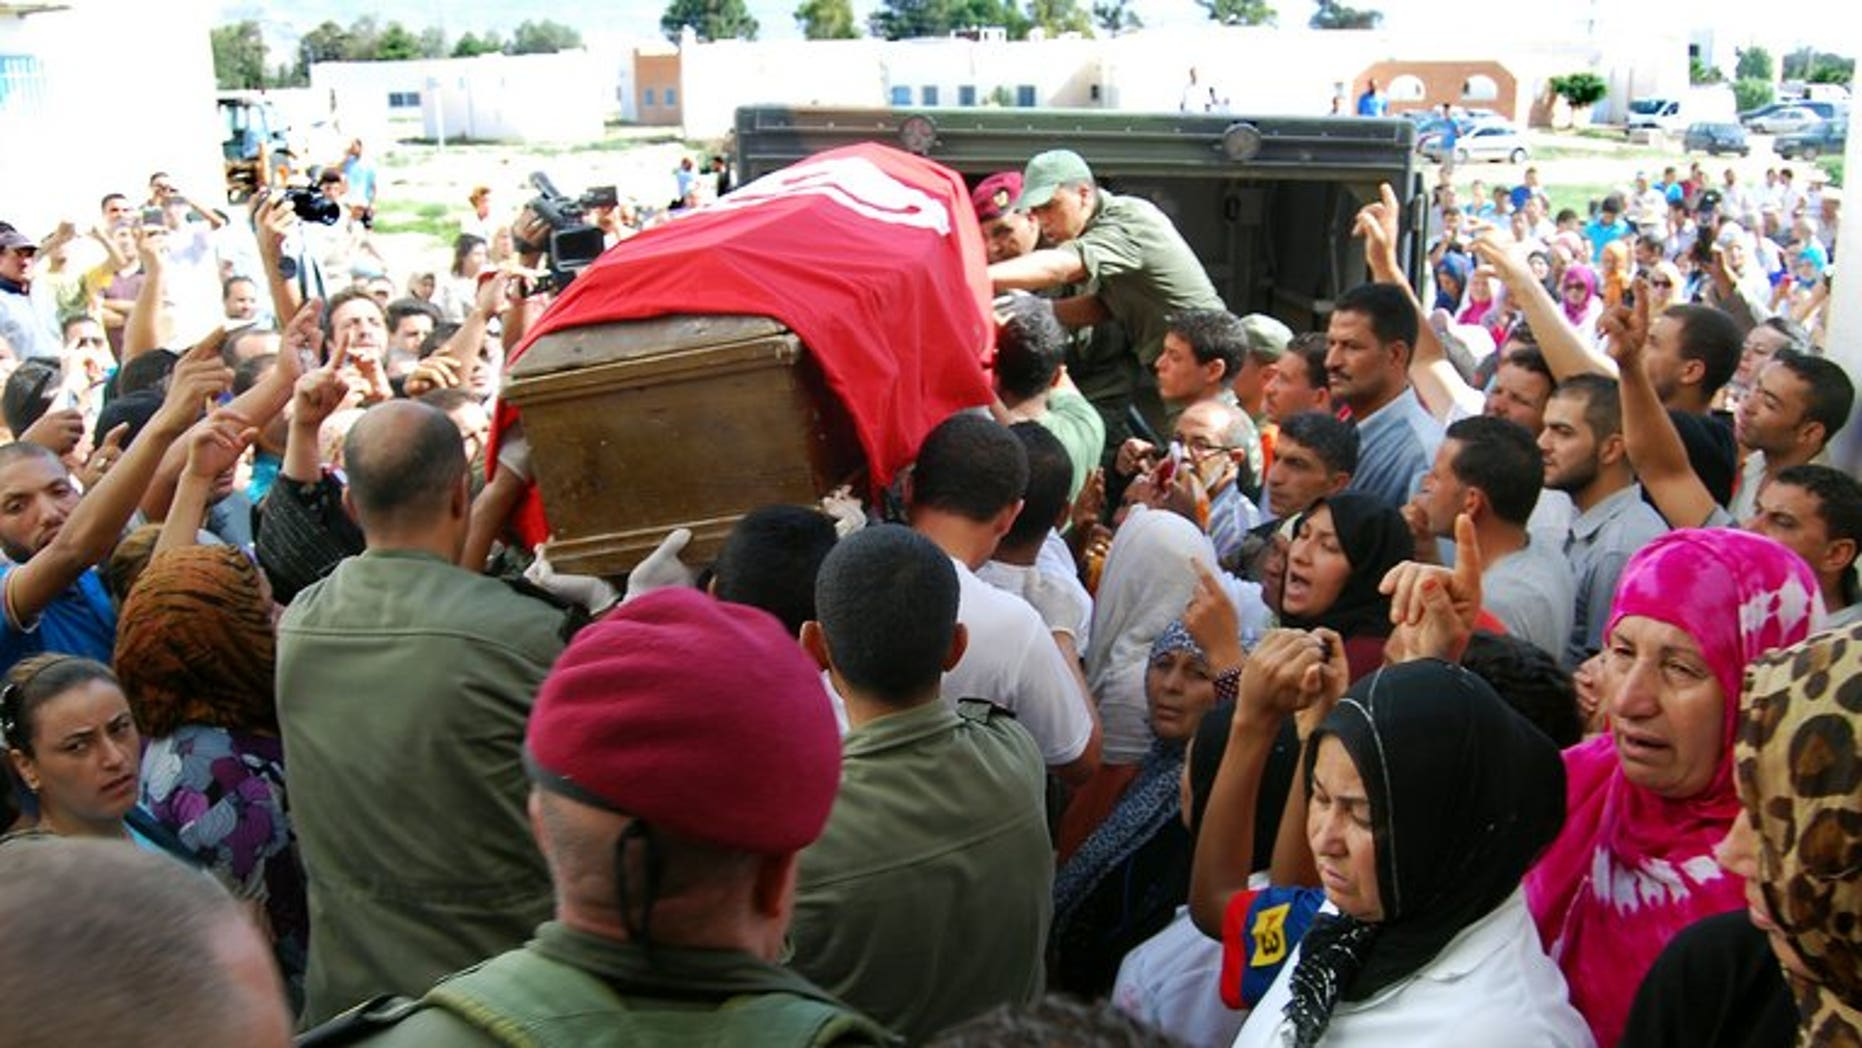 Tunisian soldiers carry the coffin, draped in the Tunisian flag, of one of the eight soldiers that was slain by militants in an ambush near the Algerian border, as they leave the hospital in Kasserine on July 30, 2013. Algeria's army has reinforced its forces along the eastern border with Tunisia, Interior Minister Daho Ould Kablia said on Thursday, days after the killing.